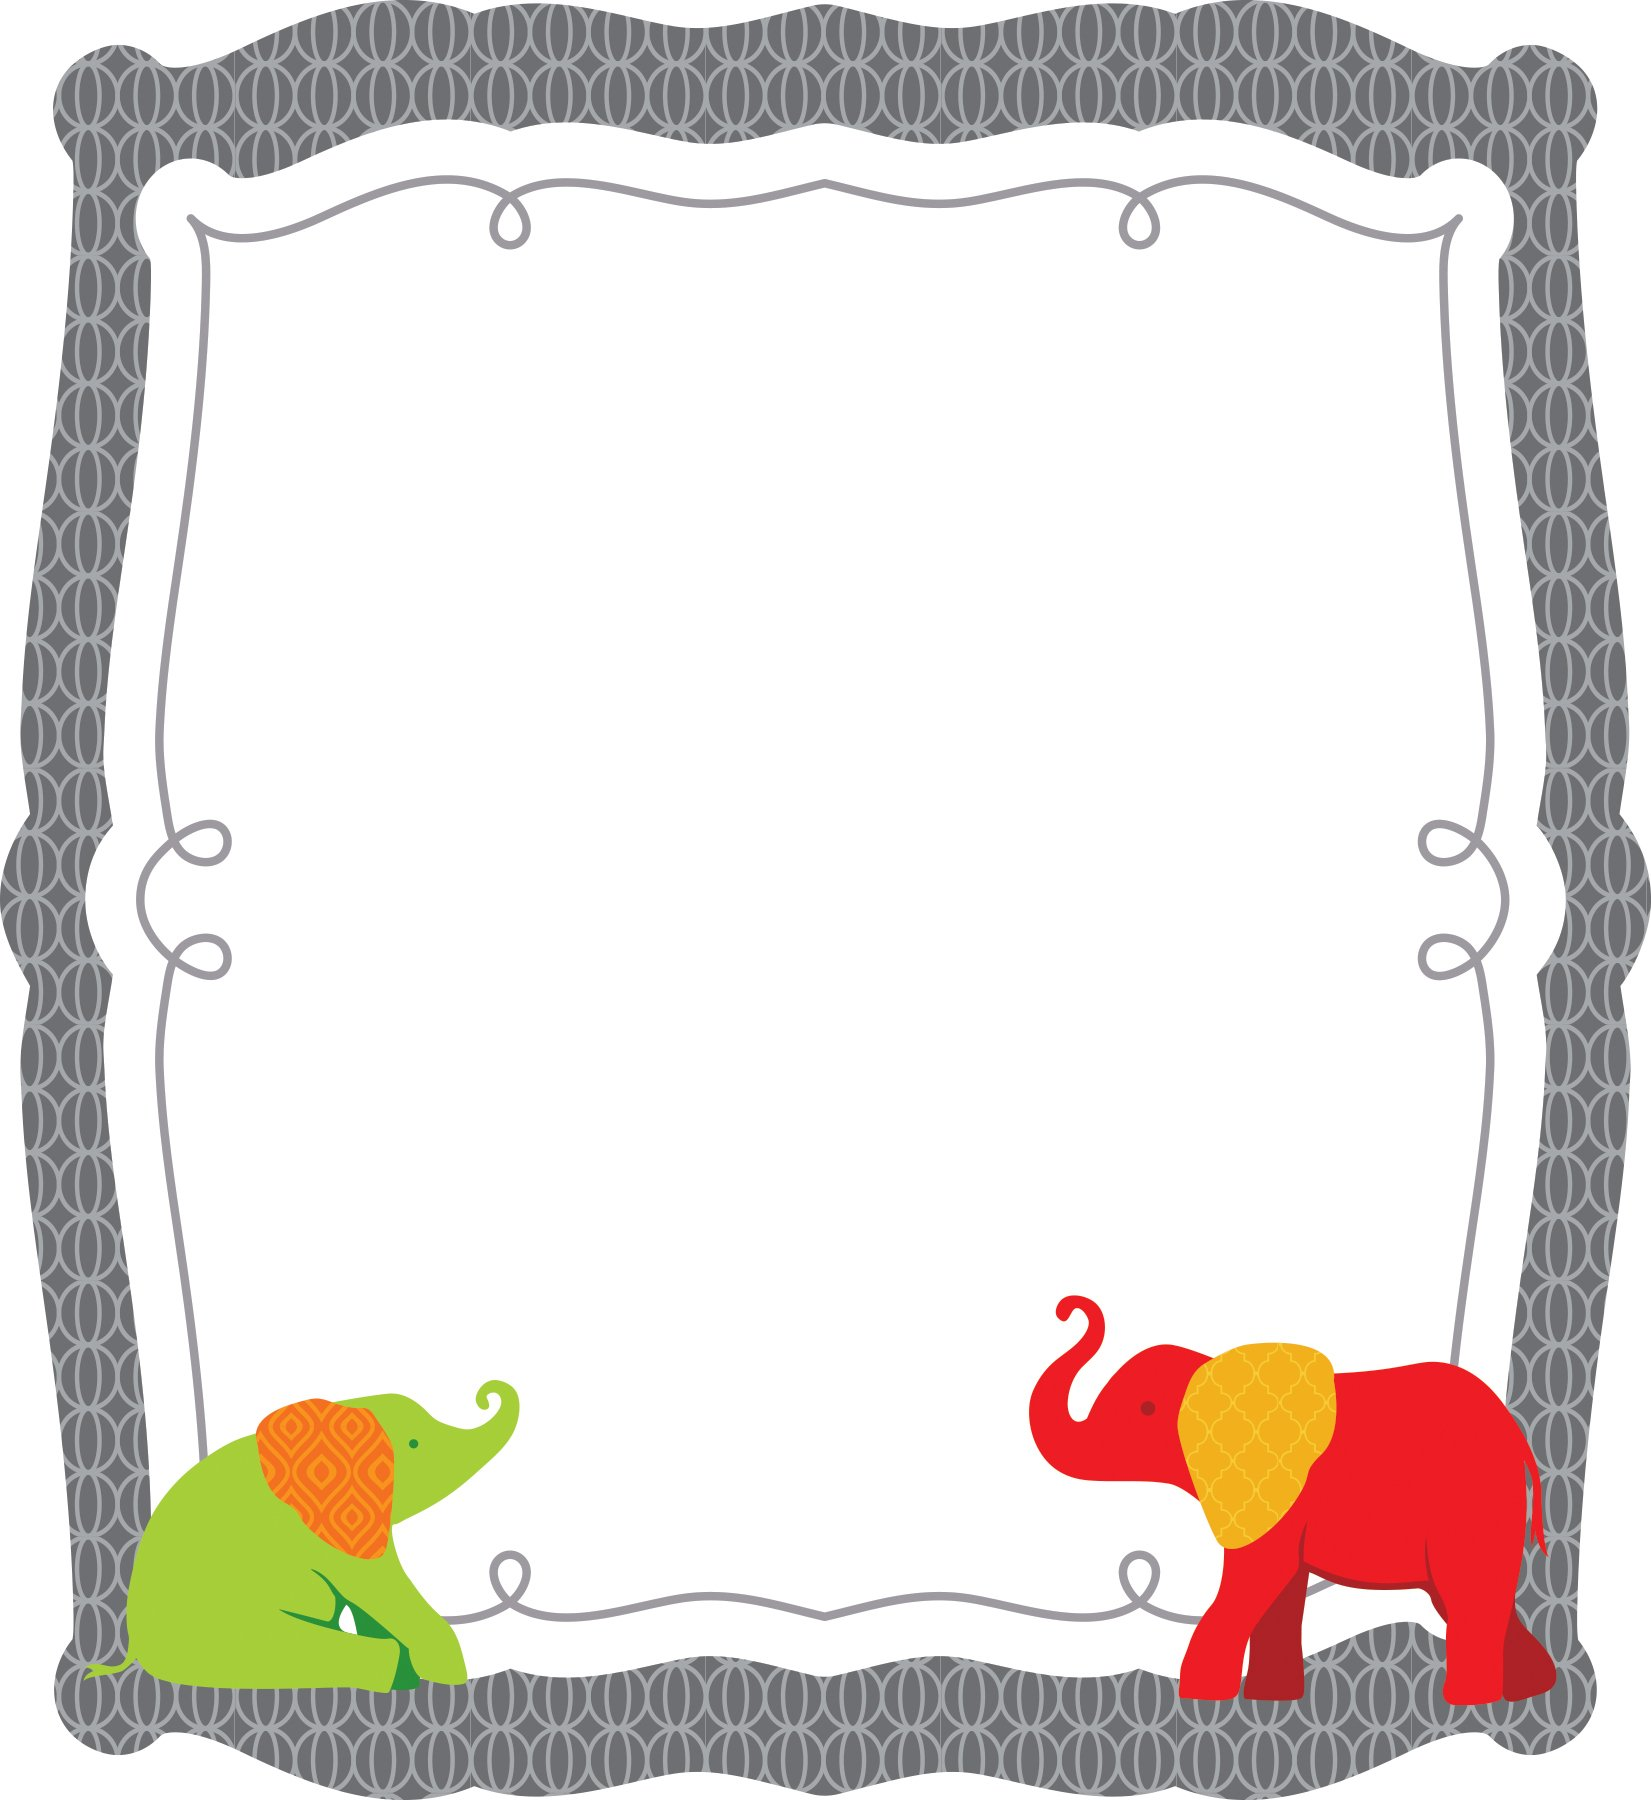 Parade of Elephants Cut-Outs ebook